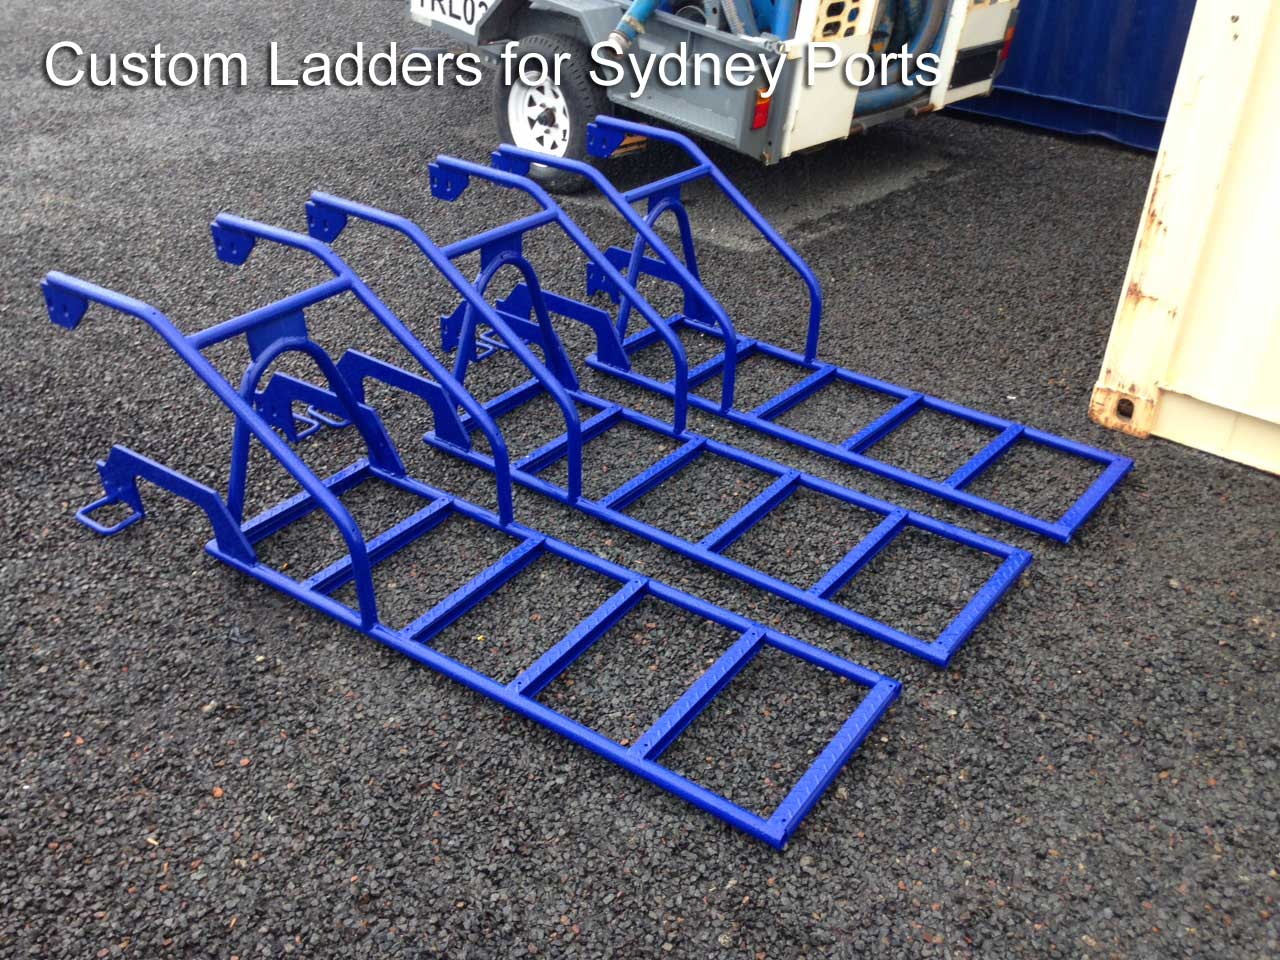 Custom-Ladders-for-Sydney-Ports